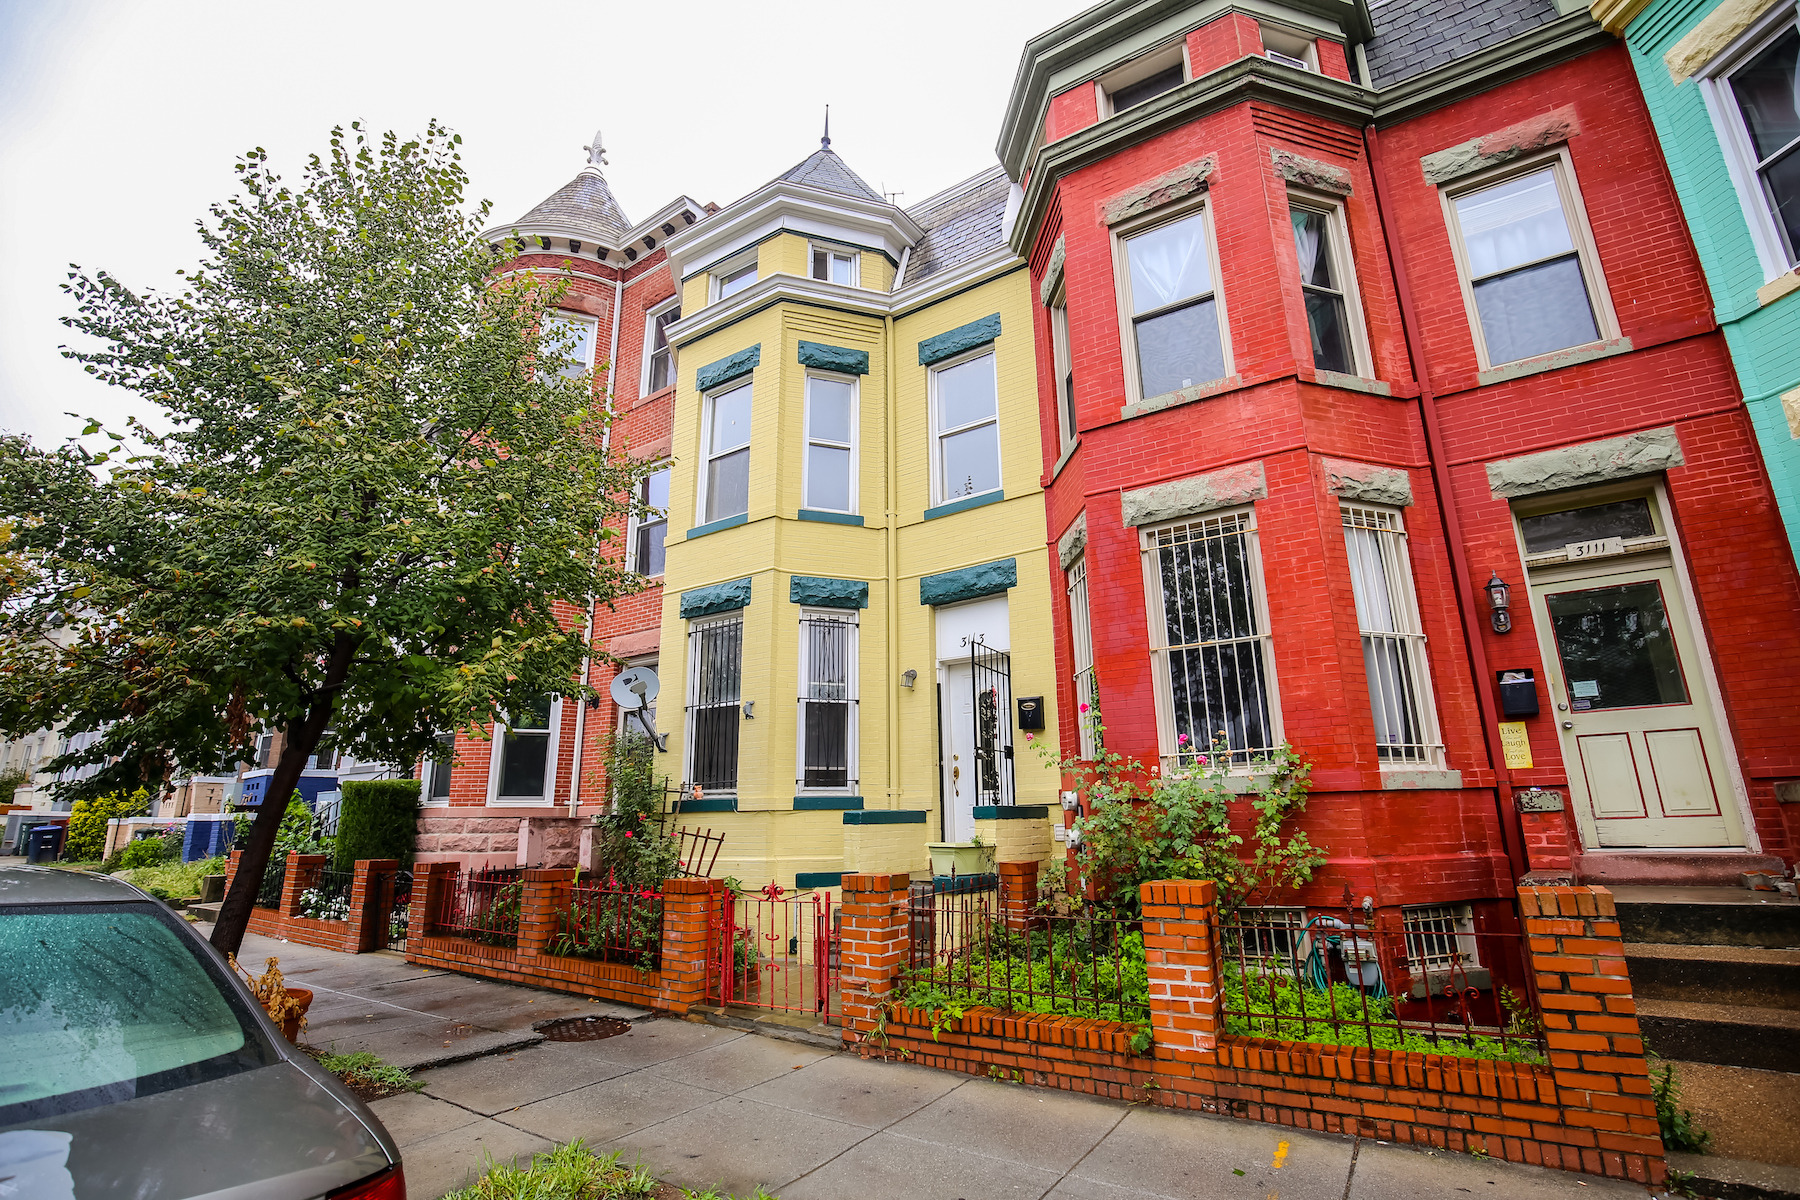 Townhouse for Sale at 3113 11th Street Nw, Washington Washington, District Of Columbia, 20010 United States